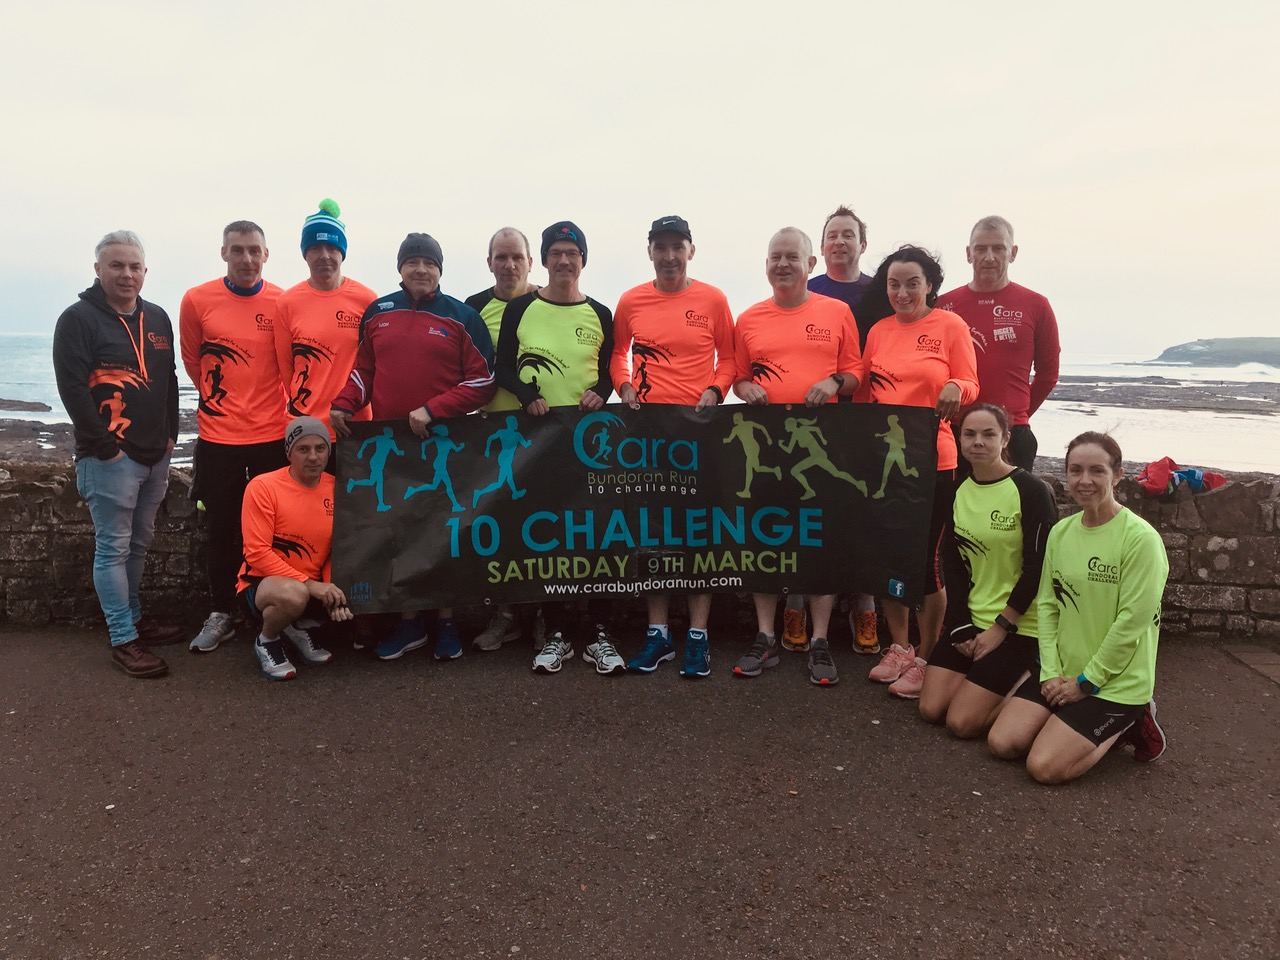 Cara Run call for charities and community groups